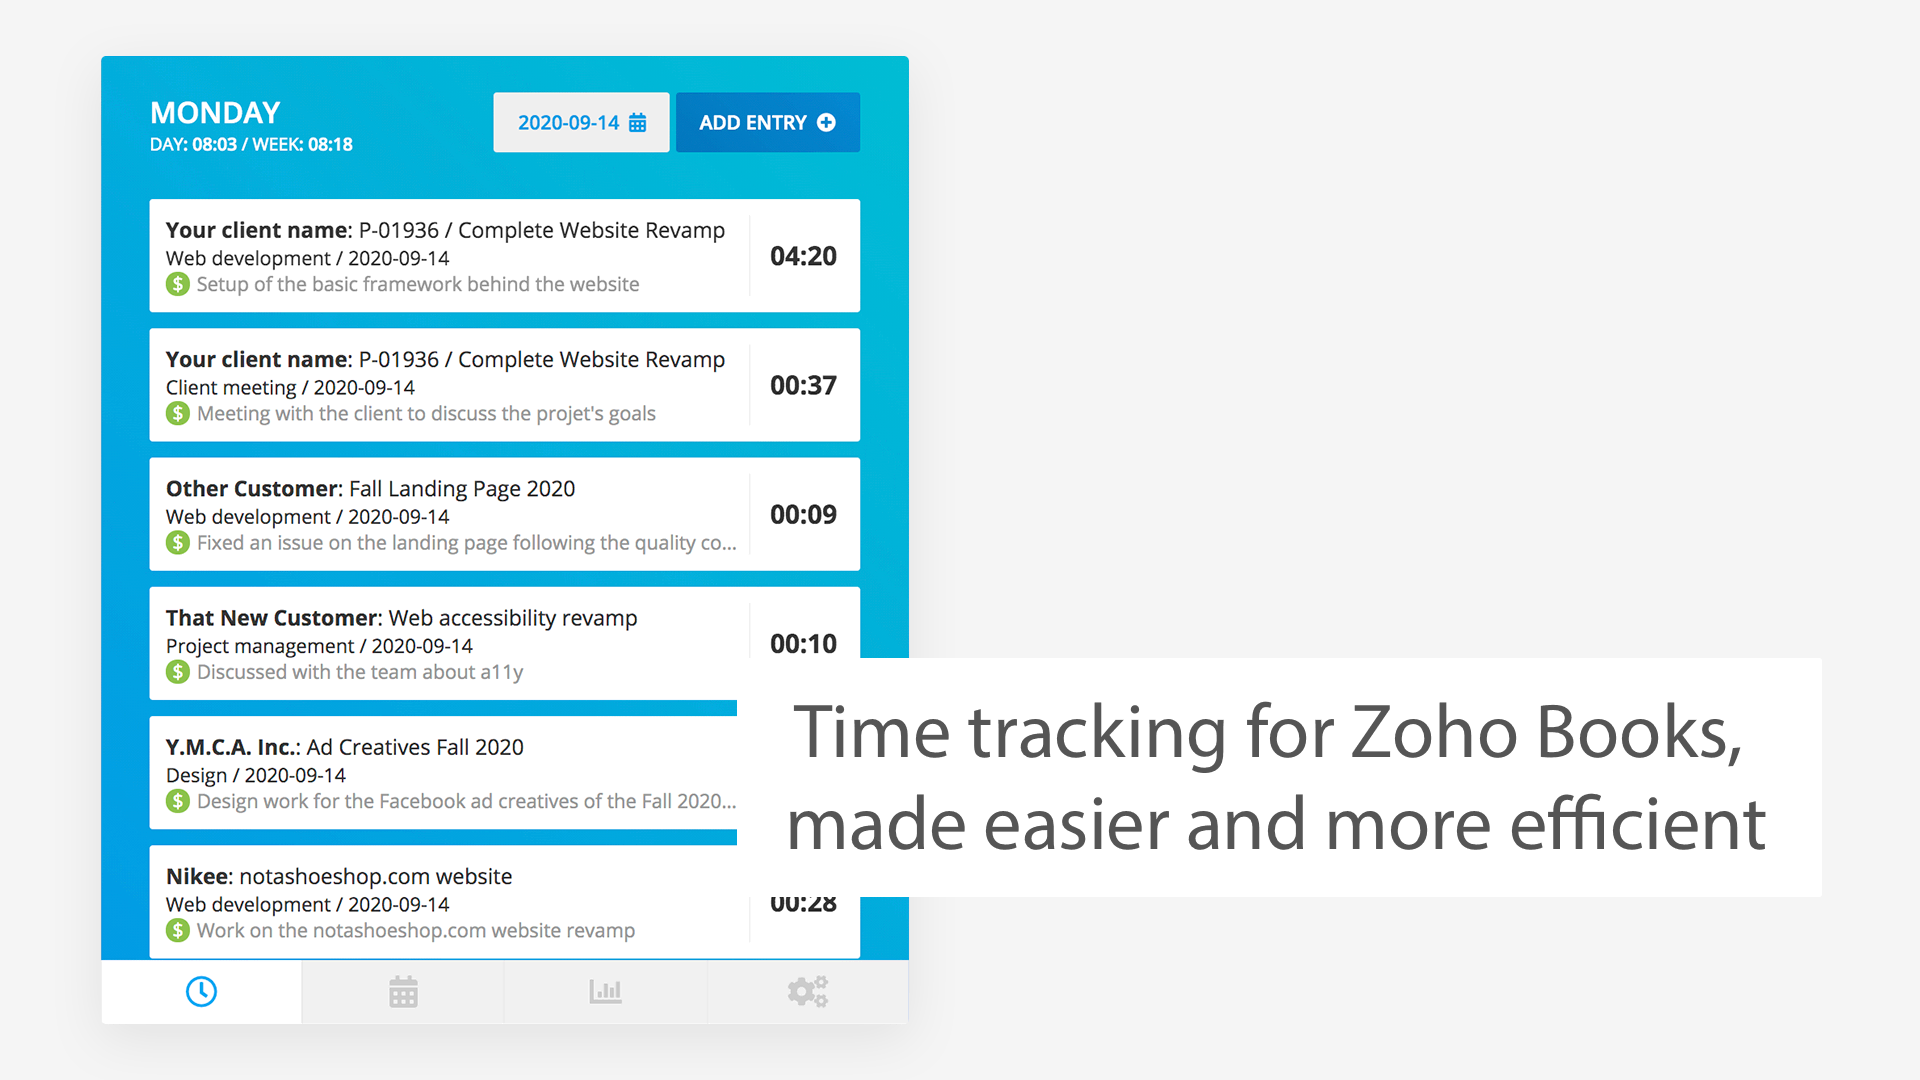 A preview of the Zoho Books Easier Time Tracking extension for Chrome